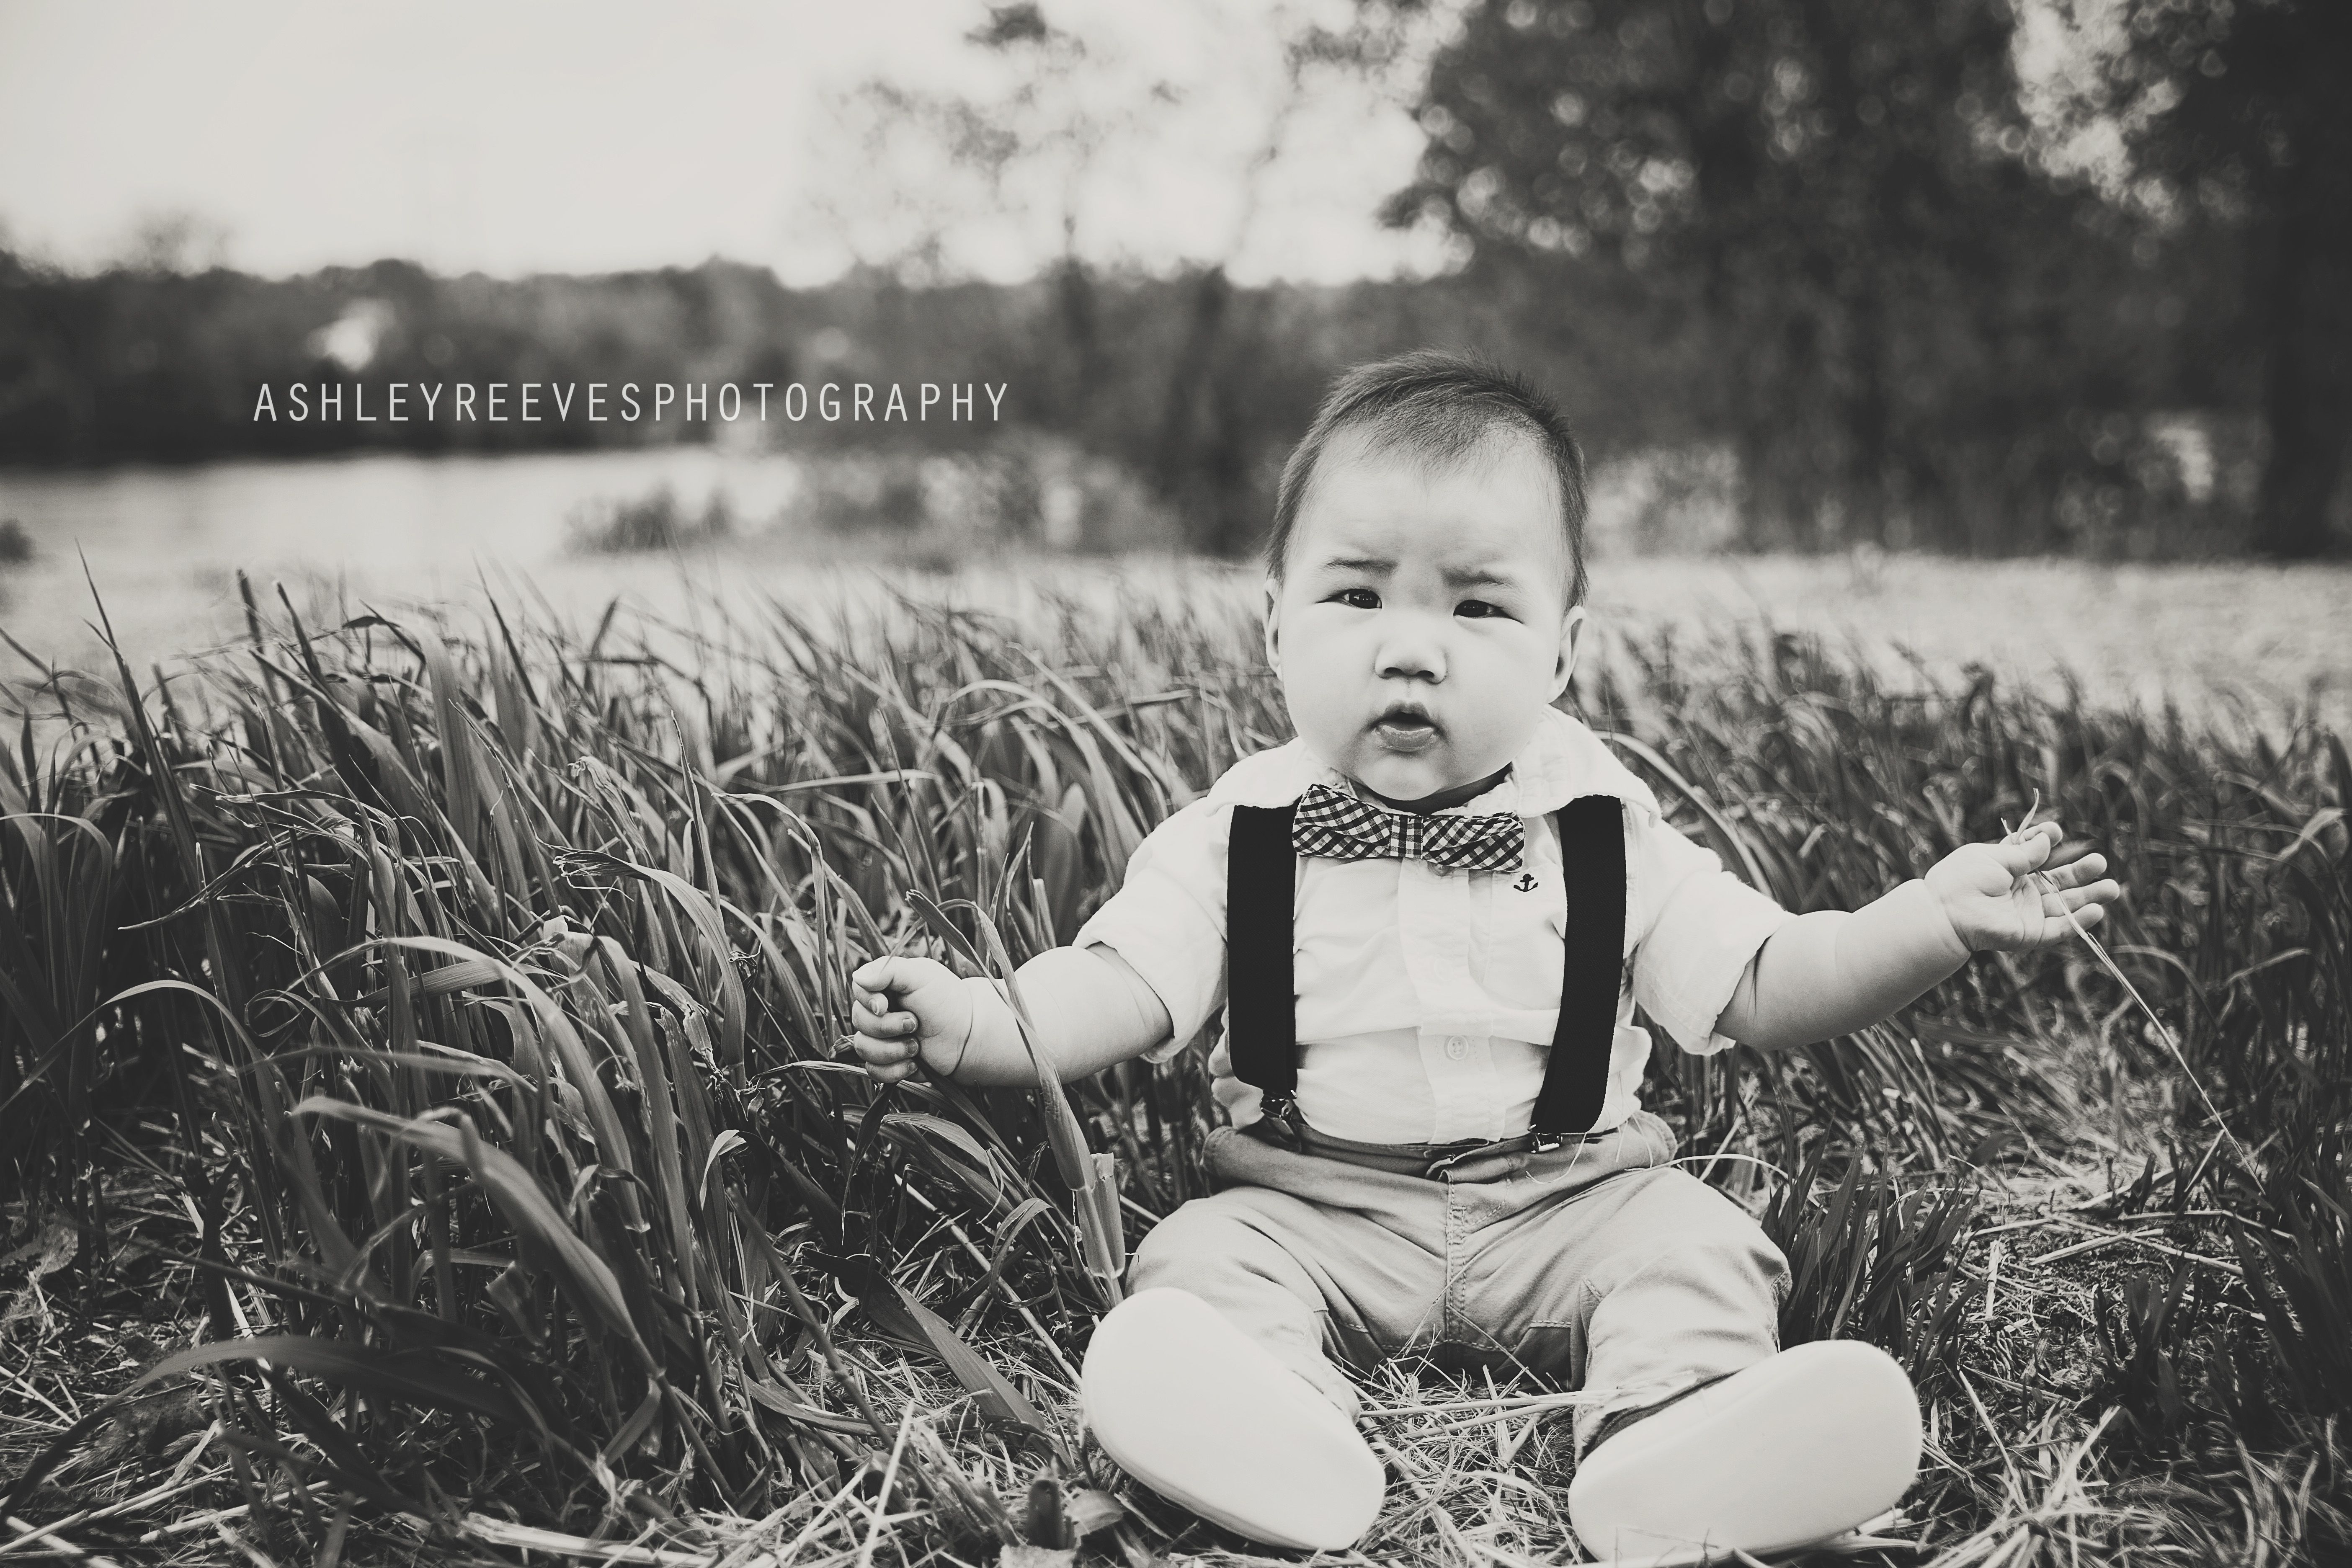 Mens haircuts minneapolis stud muffin  adorable ashley reeves photography  minneapolis